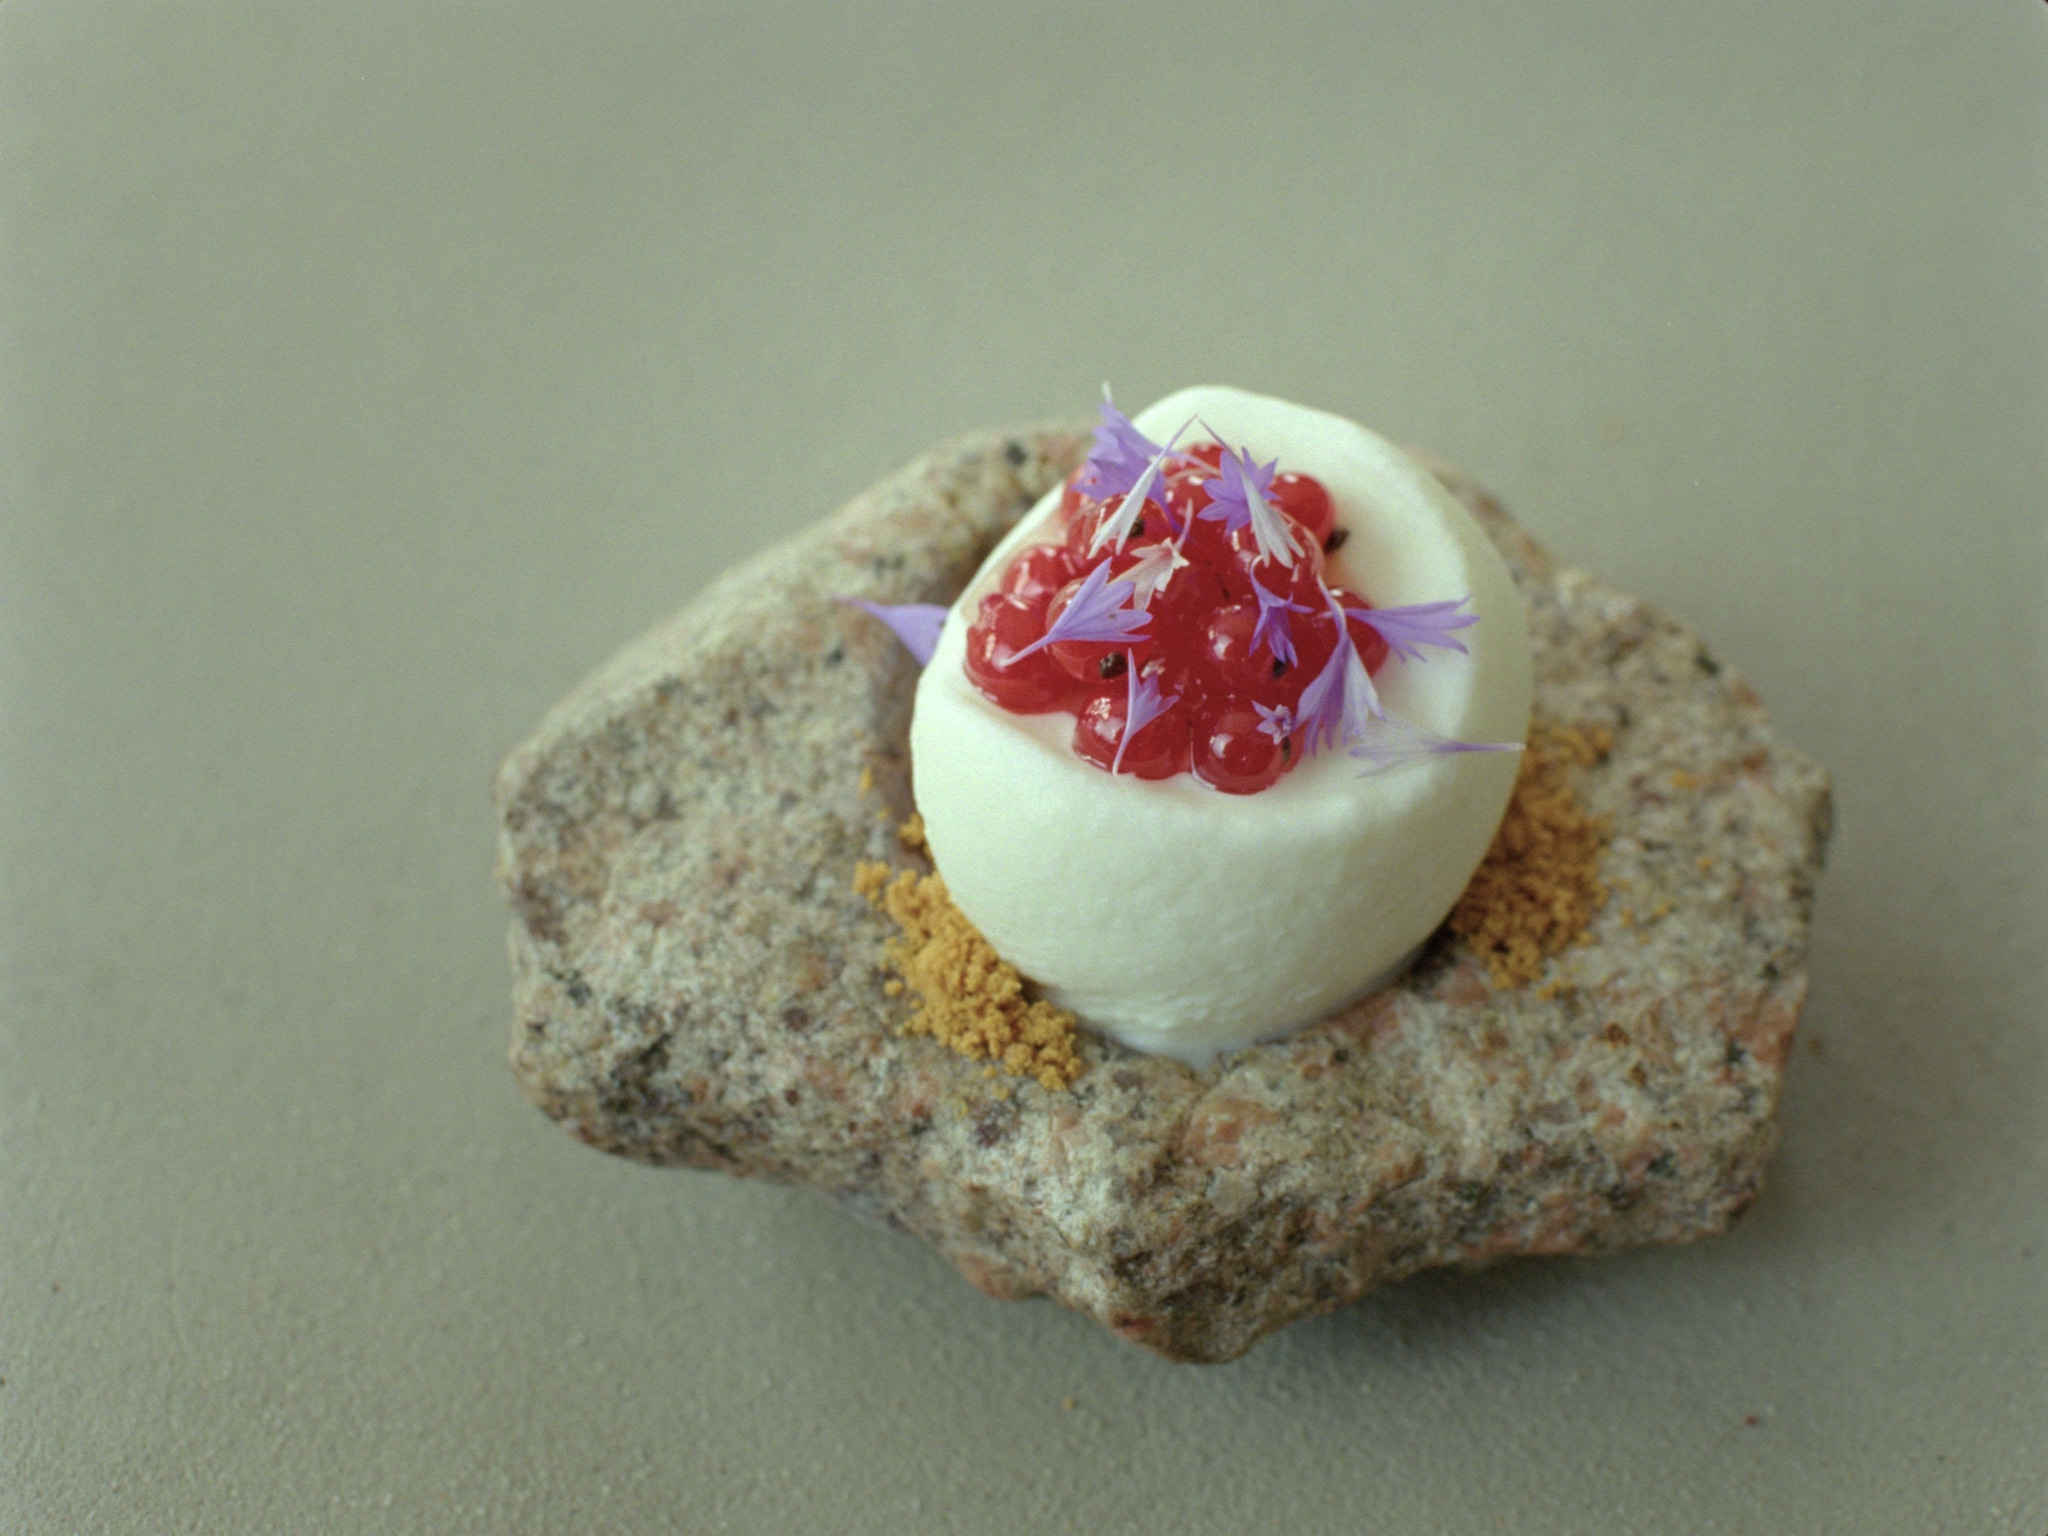 A small stone plate with ice cream, red currant and corn flower on a concrete table.